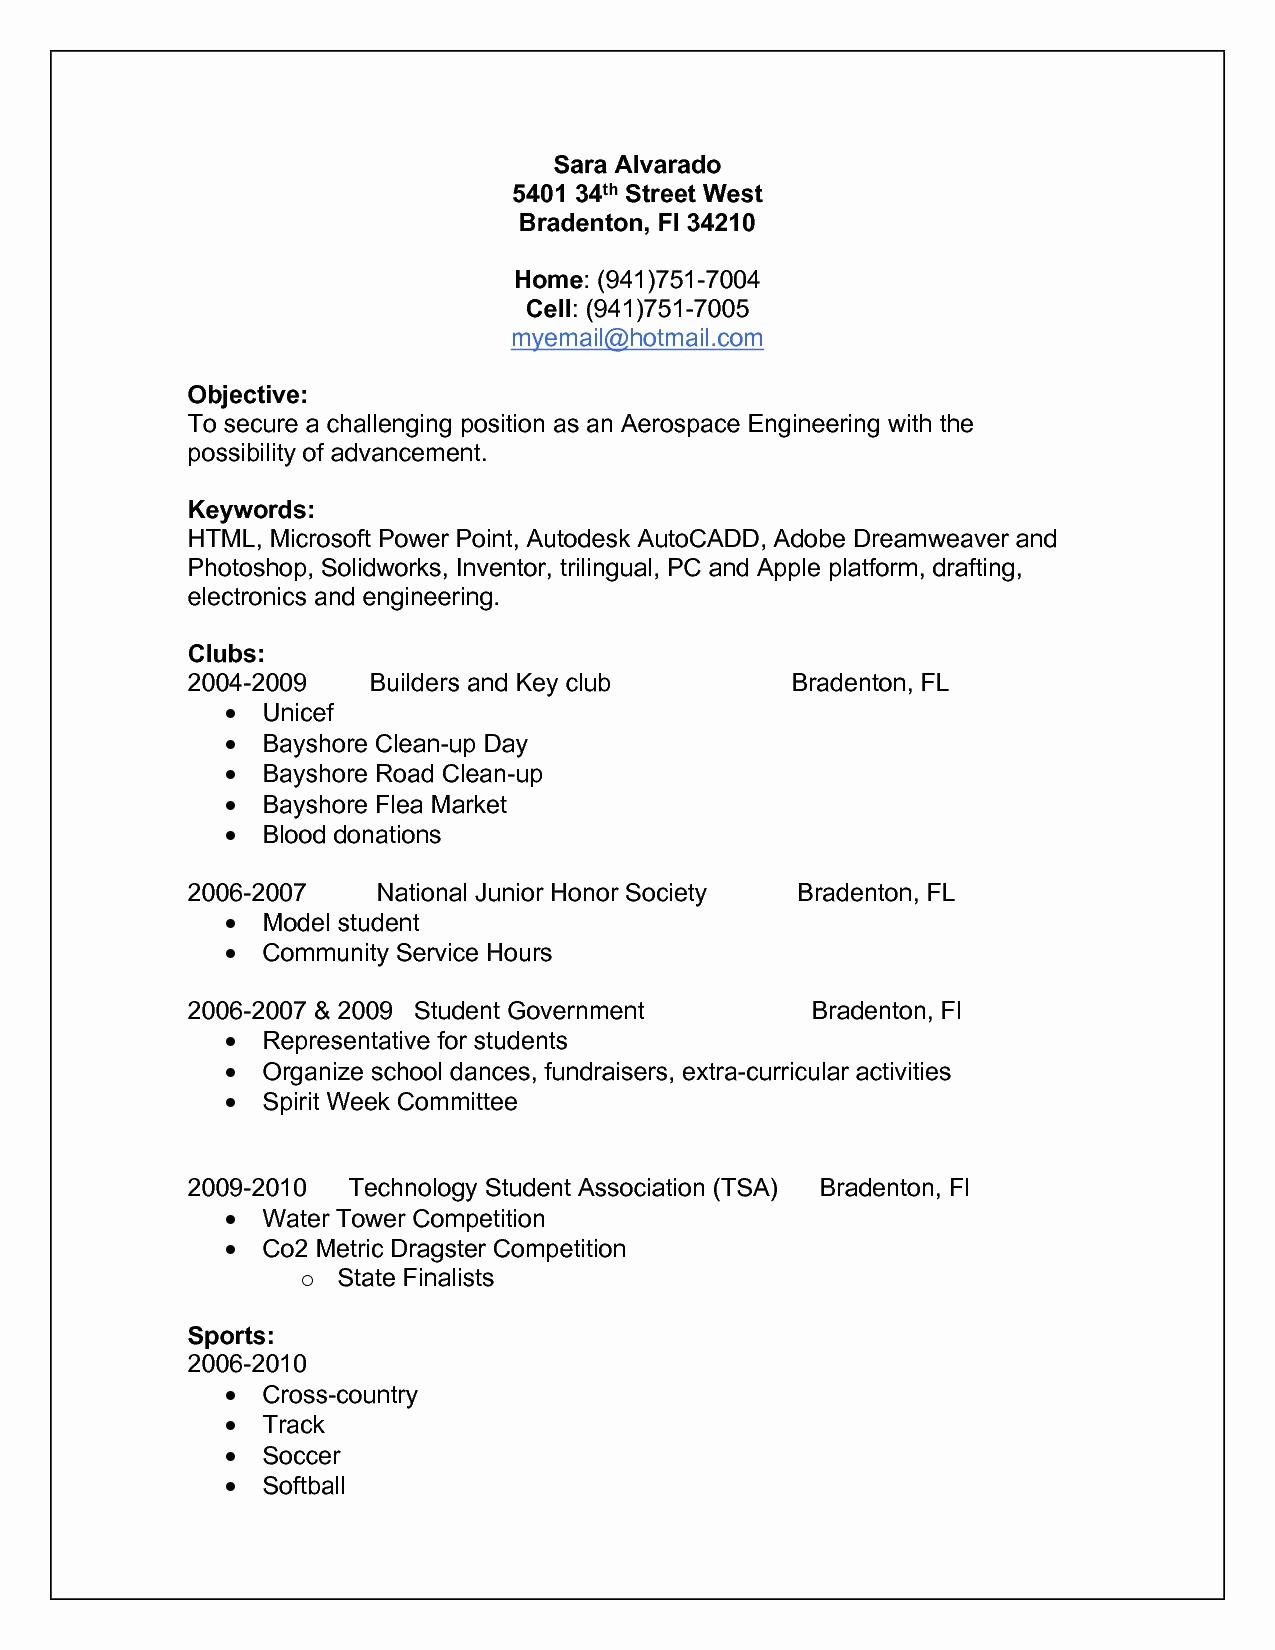 Technical Resume Template - Resume Educational Background format Awesome Lovely Pr Resume